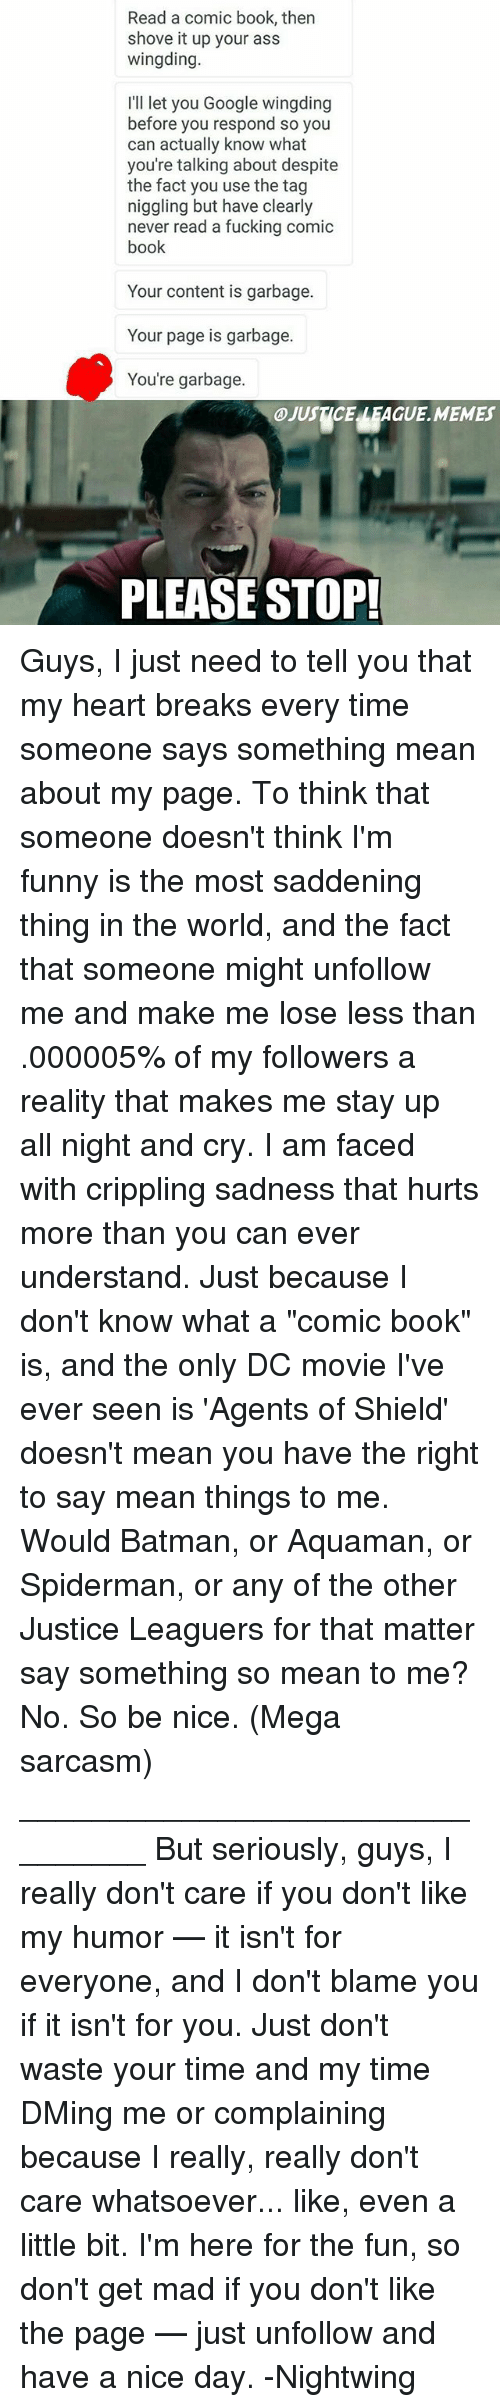 """Seriously Guys: Read a comic book, then  shove it up your ass  wingding.  IlI let you Google wingding  before you respond so you  can actually know what  you're talking about despite  the fact you use the tag  niggling but have clearly  never read a fucking comic  book  Your content is garbage.  Your page is garbage.  You're garbage.  0.JUSTICE LEAGUE.MEMES  PLEASE STOP! Guys, I just need to tell you that my heart breaks every time someone says something mean about my page. To think that someone doesn't think I'm funny is the most saddening thing in the world, and the fact that someone might unfollow me and make me lose less than .000005% of my followers a reality that makes me stay up all night and cry. I am faced with crippling sadness that hurts more than you can ever understand. Just because I don't know what a """"comic book"""" is, and the only DC movie I've ever seen is 'Agents of Shield' doesn't mean you have the right to say mean things to me. Would Batman, or Aquaman, or Spiderman, or any of the other Justice Leaguers for that matter say something so mean to me? No. So be nice. (Mega sarcasm) ________________________________ But seriously, guys, I really don't care if you don't like my humor — it isn't for everyone, and I don't blame you if it isn't for you. Just don't waste your time and my time DMing me or complaining because I really, really don't care whatsoever... like, even a little bit. I'm here for the fun, so don't get mad if you don't like the page — just unfollow and have a nice day. -Nightwing"""